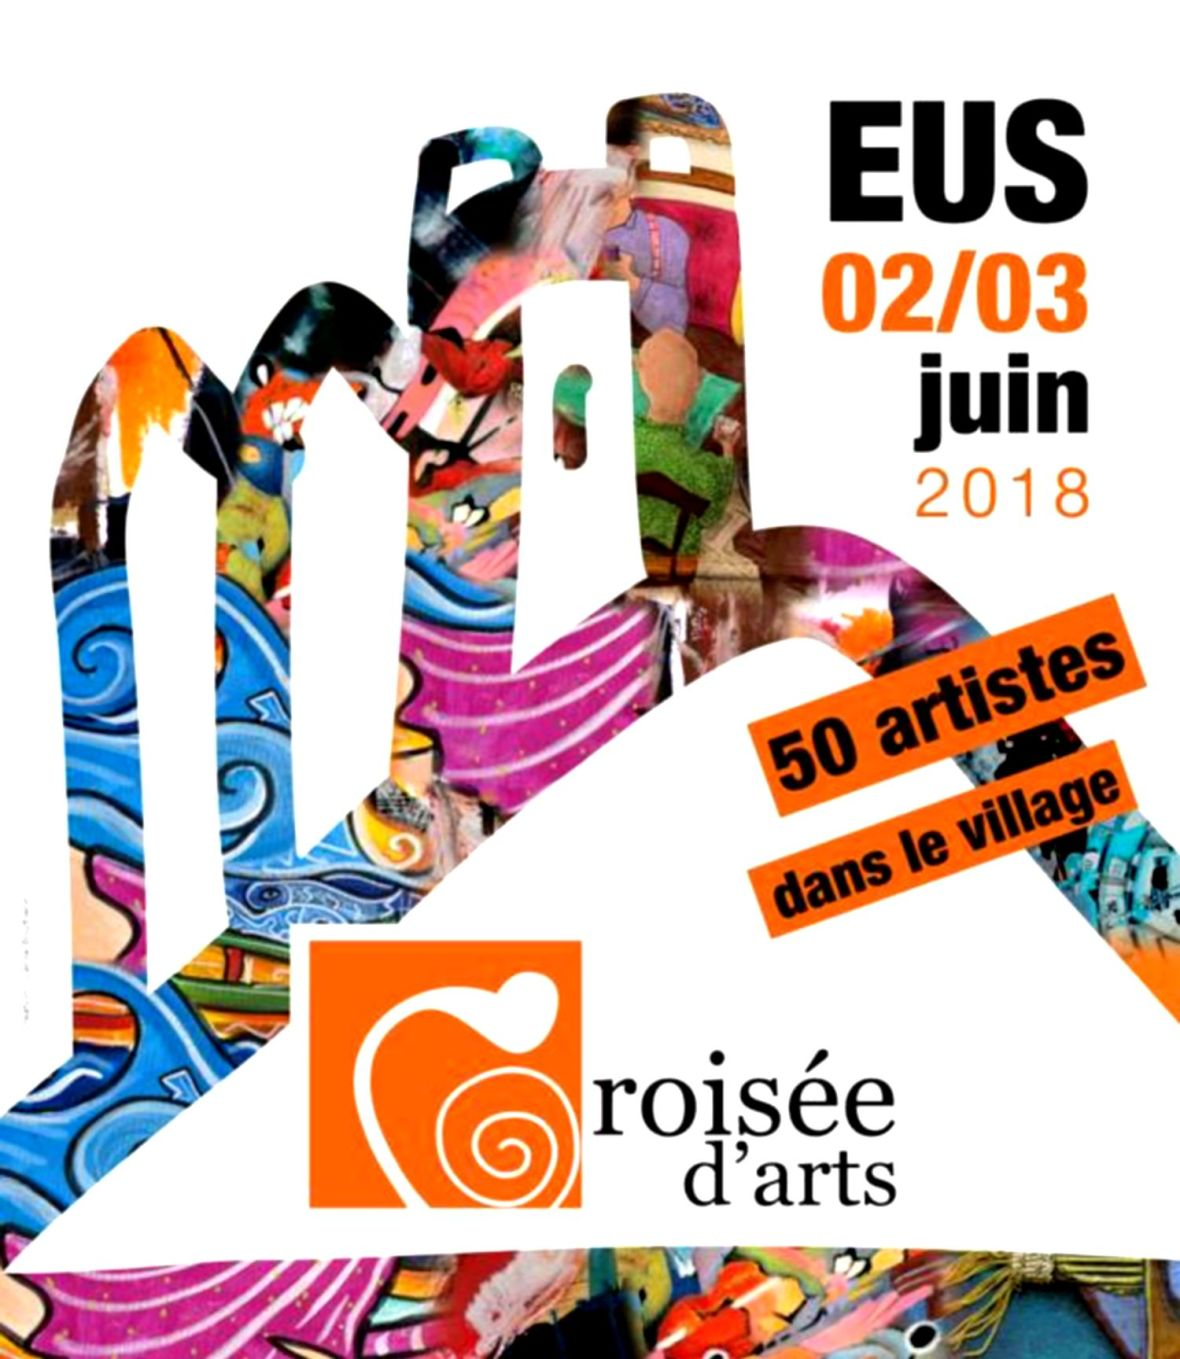 Croisée d'aRt - village d'Eus juin 2018 festival exposition art contemporain village catalan occitanie